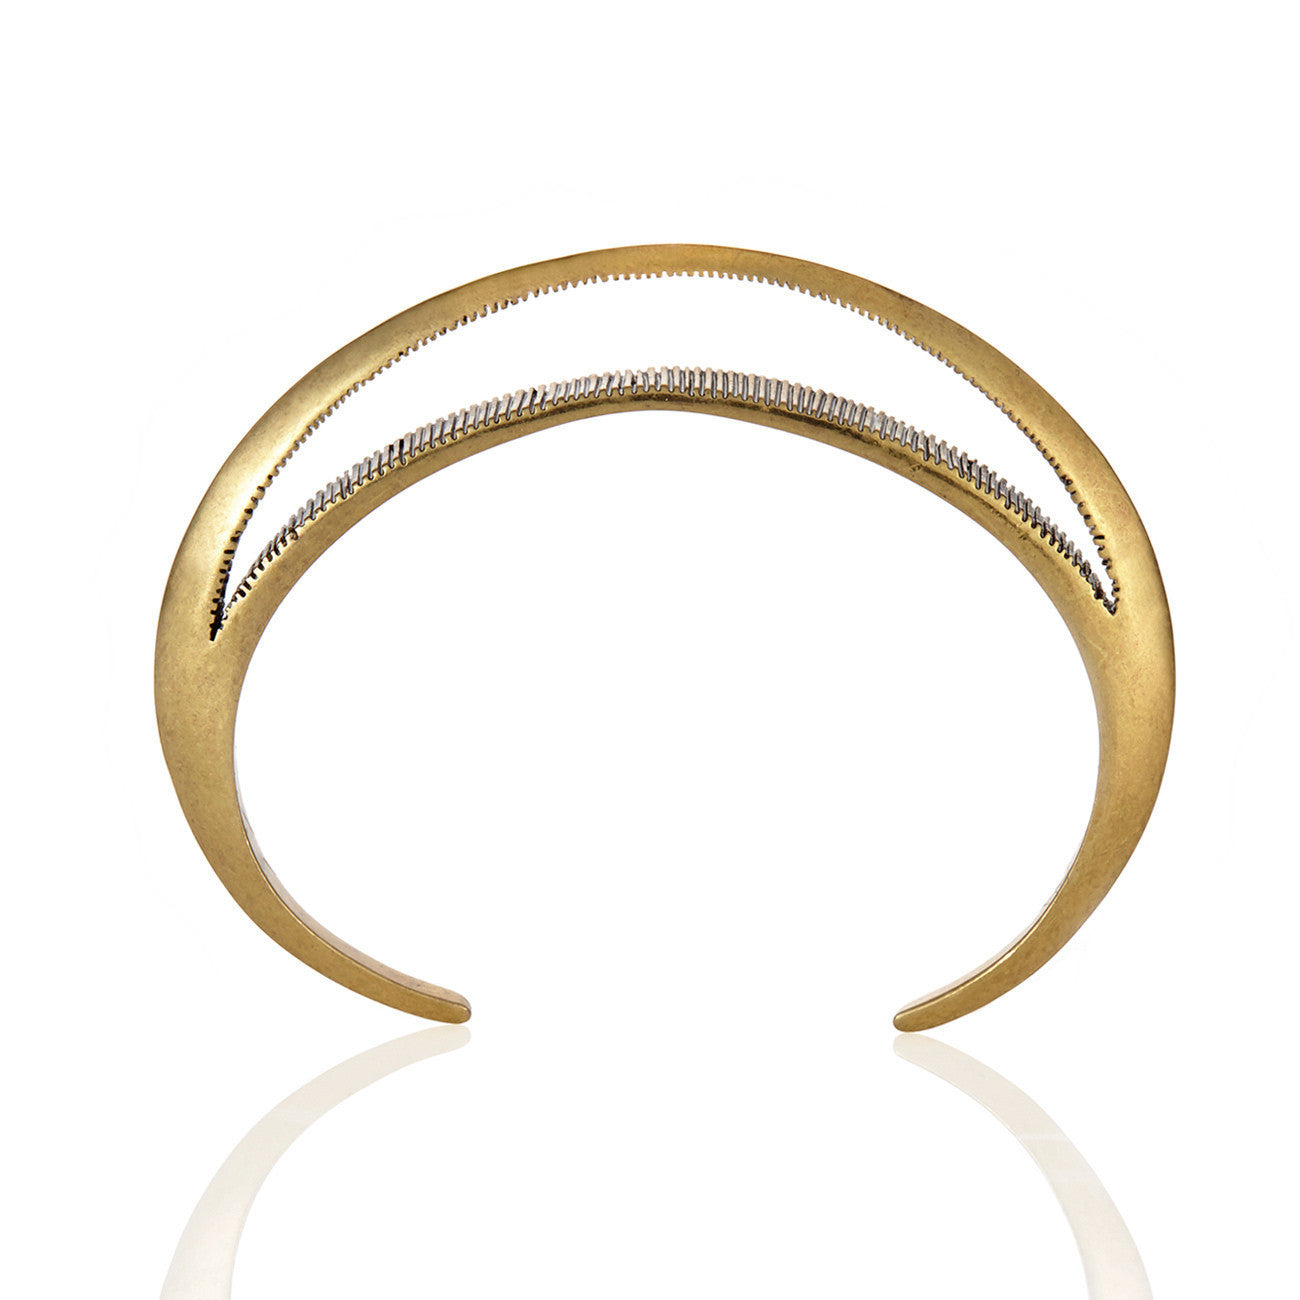 Moon Bangle in Gold - Crescent Moon Cuff by Jenny Bird